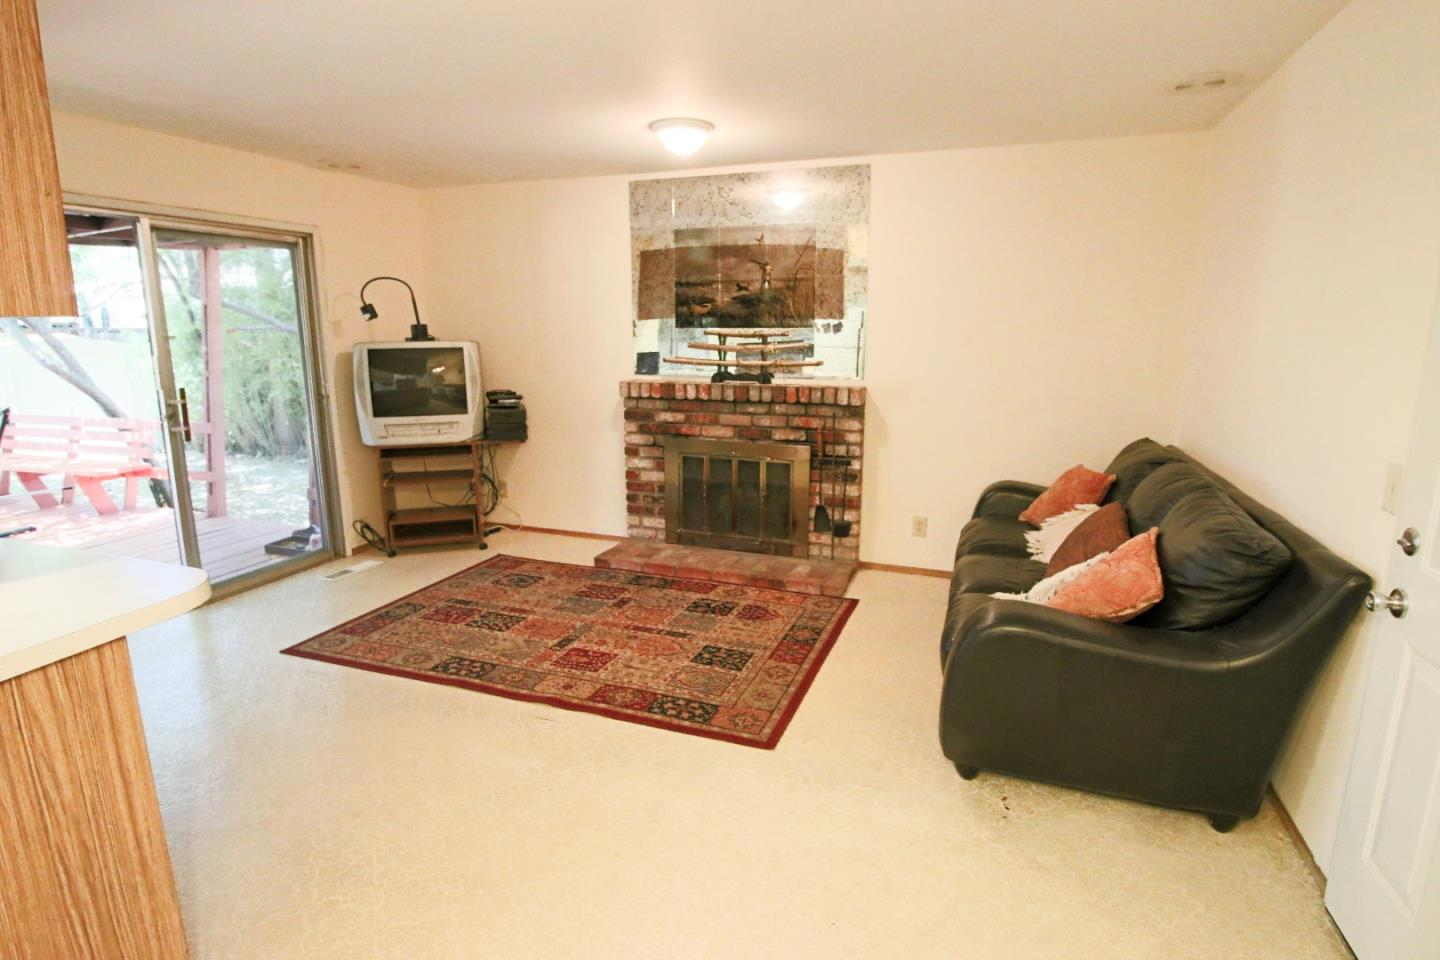 Additional photo for property listing at 6083 Loma Prieta Drive  San Jose, カリフォルニア 95123 アメリカ合衆国